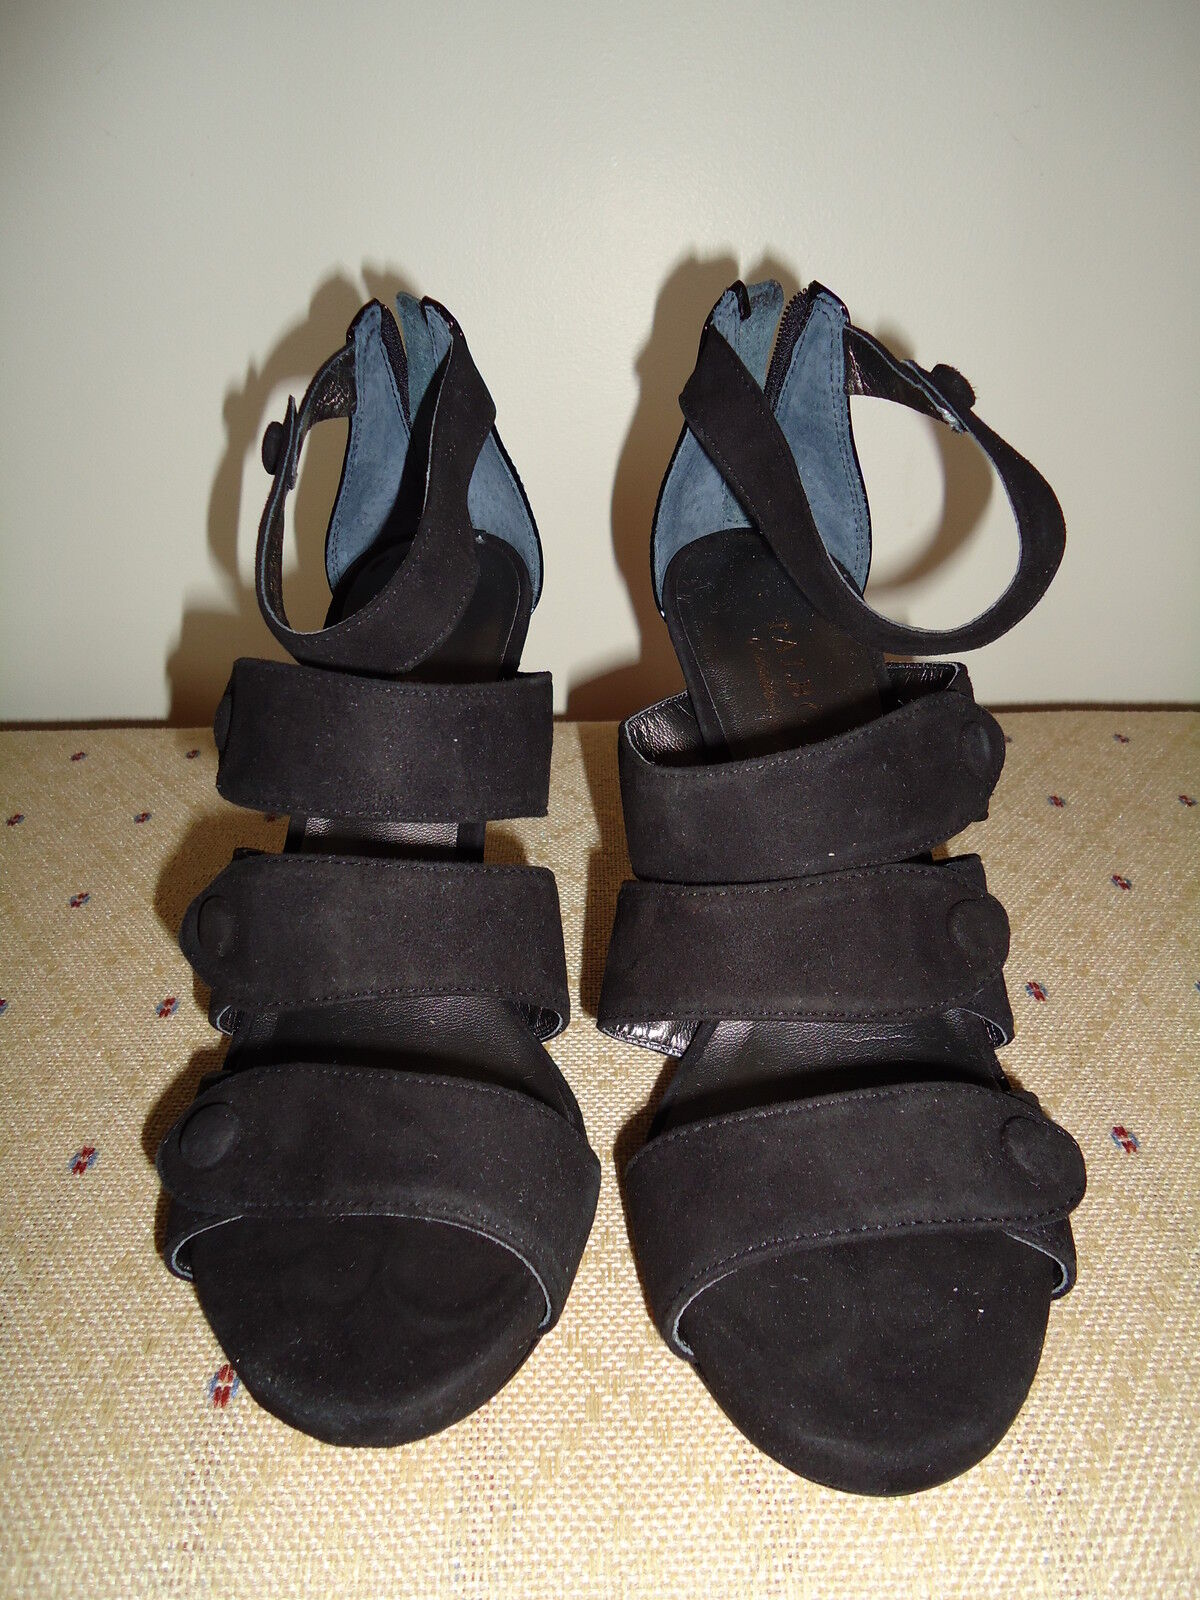 Talbots New Leather high heels shoes sandals Size 7.5